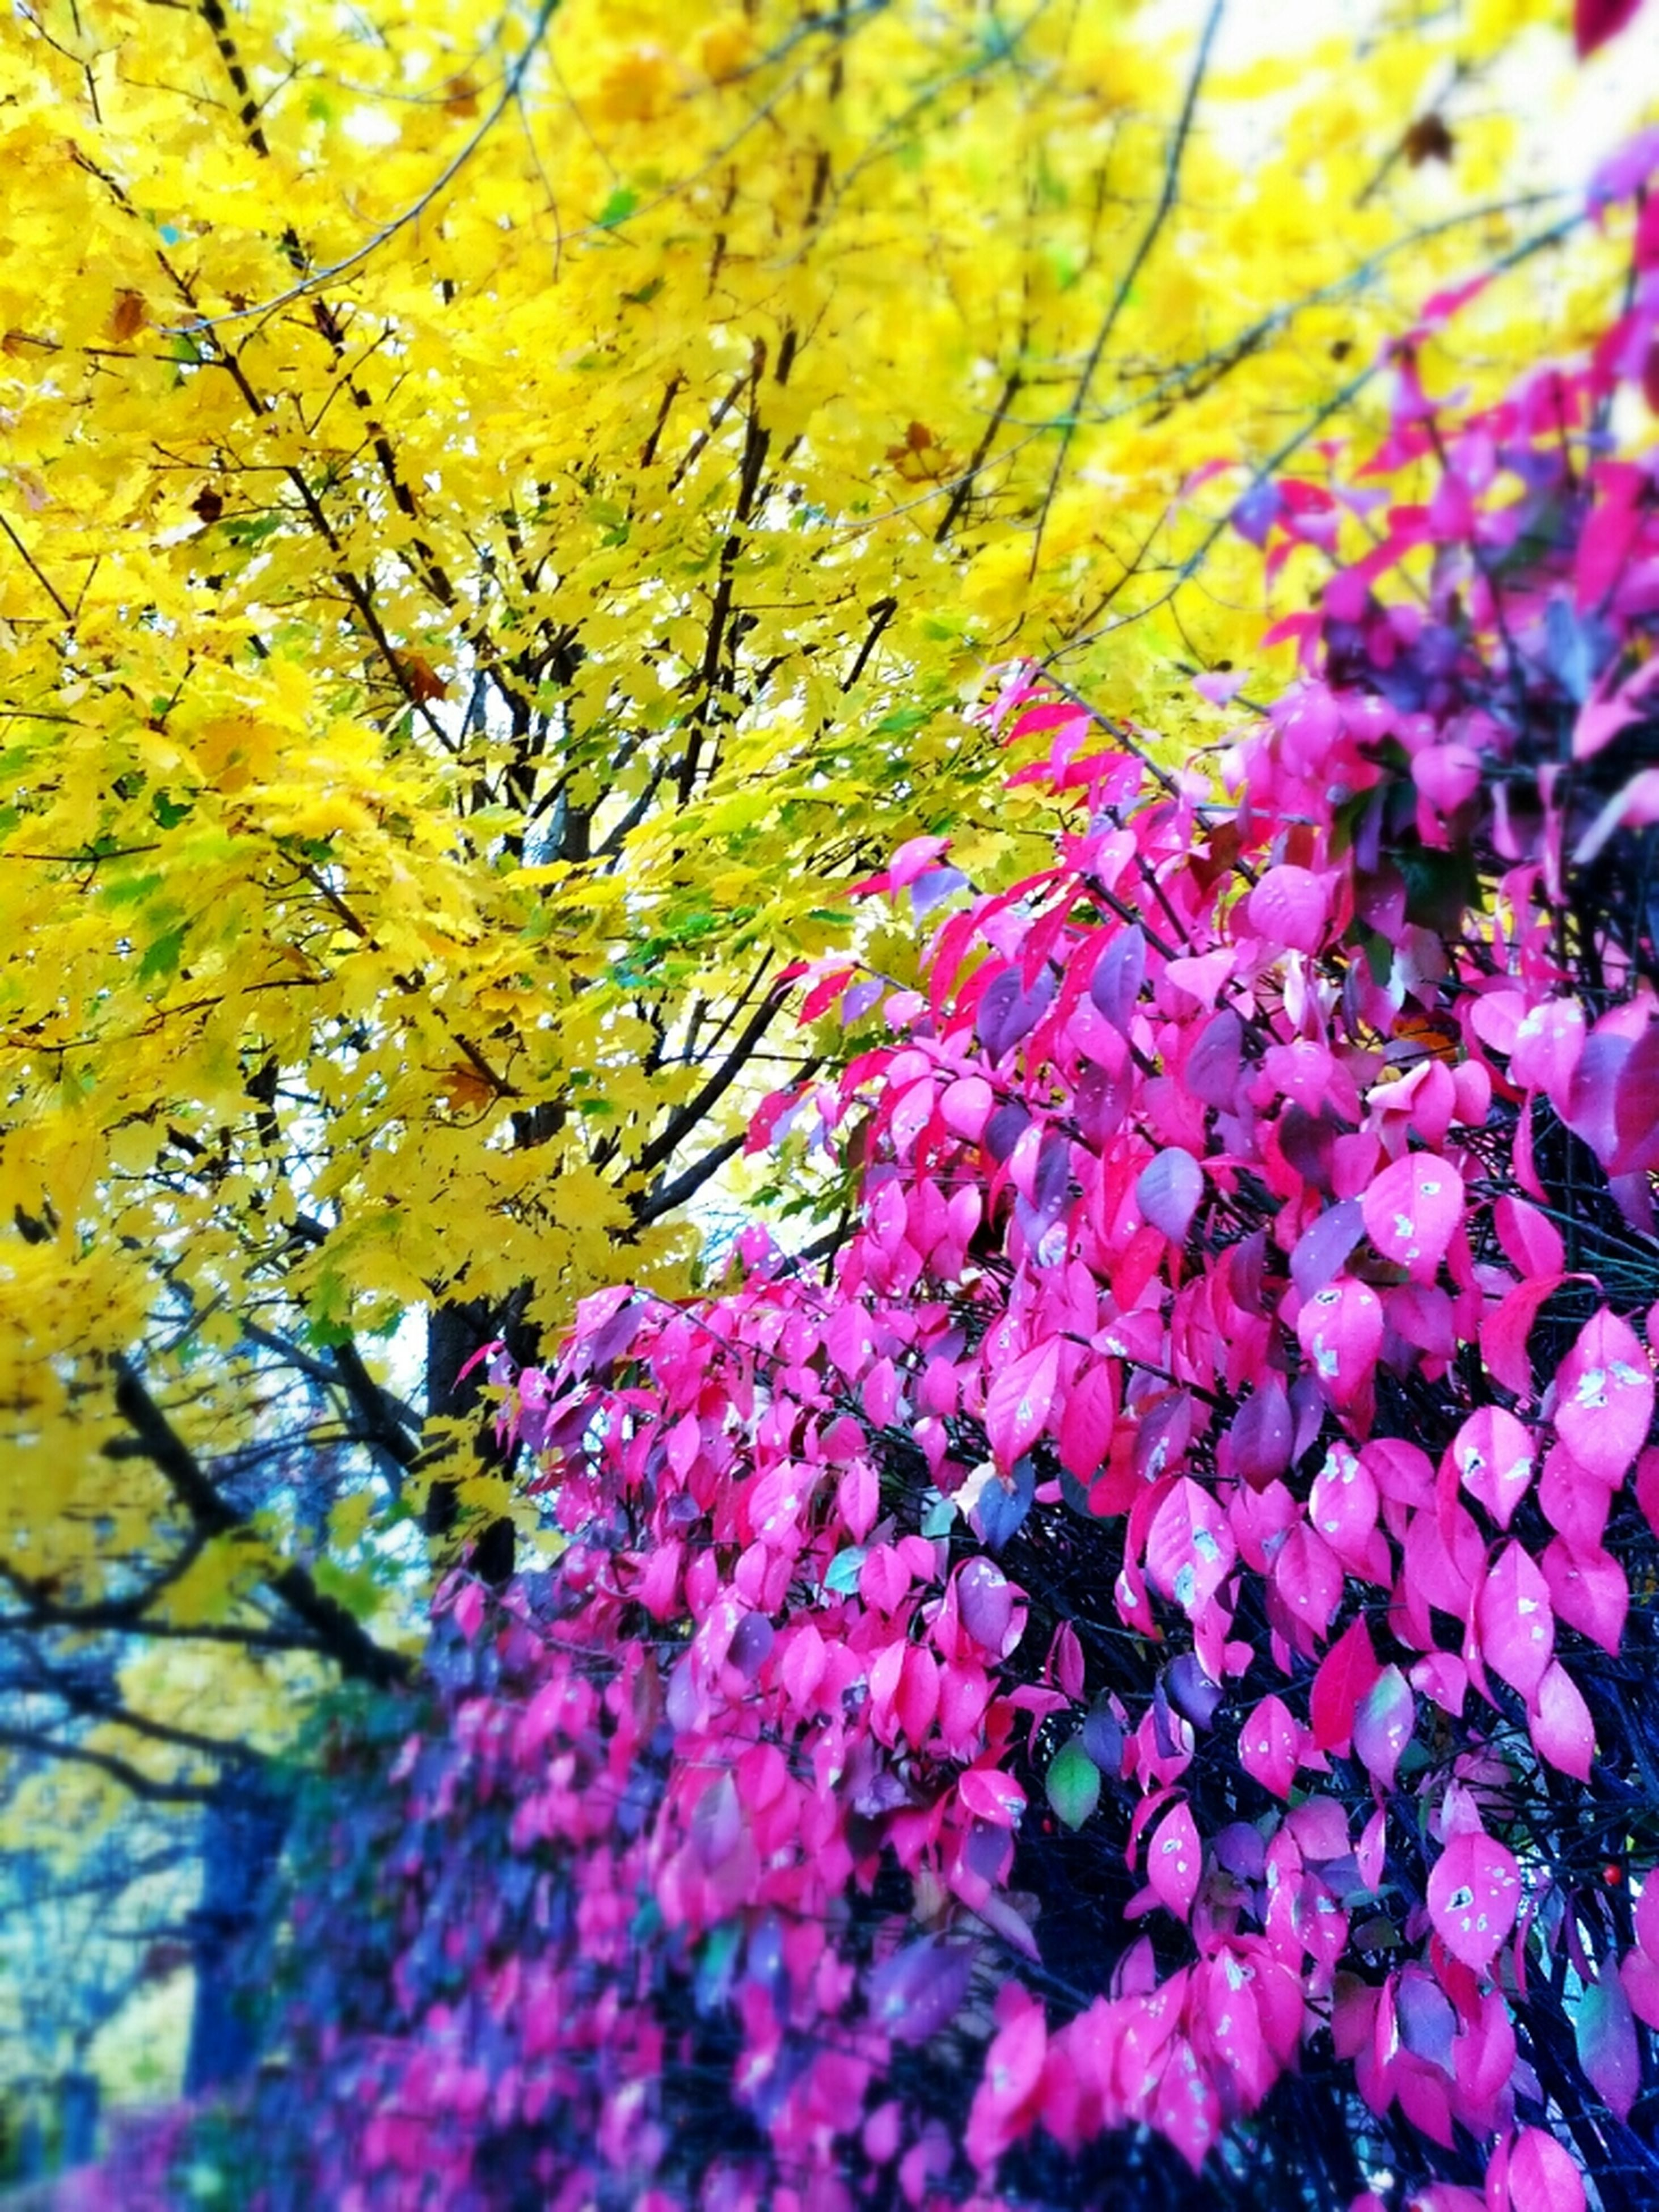 flower, freshness, fragility, growth, beauty in nature, leaf, nature, yellow, season, petal, branch, autumn, blossom, full frame, abundance, backgrounds, tree, change, multi colored, pink color